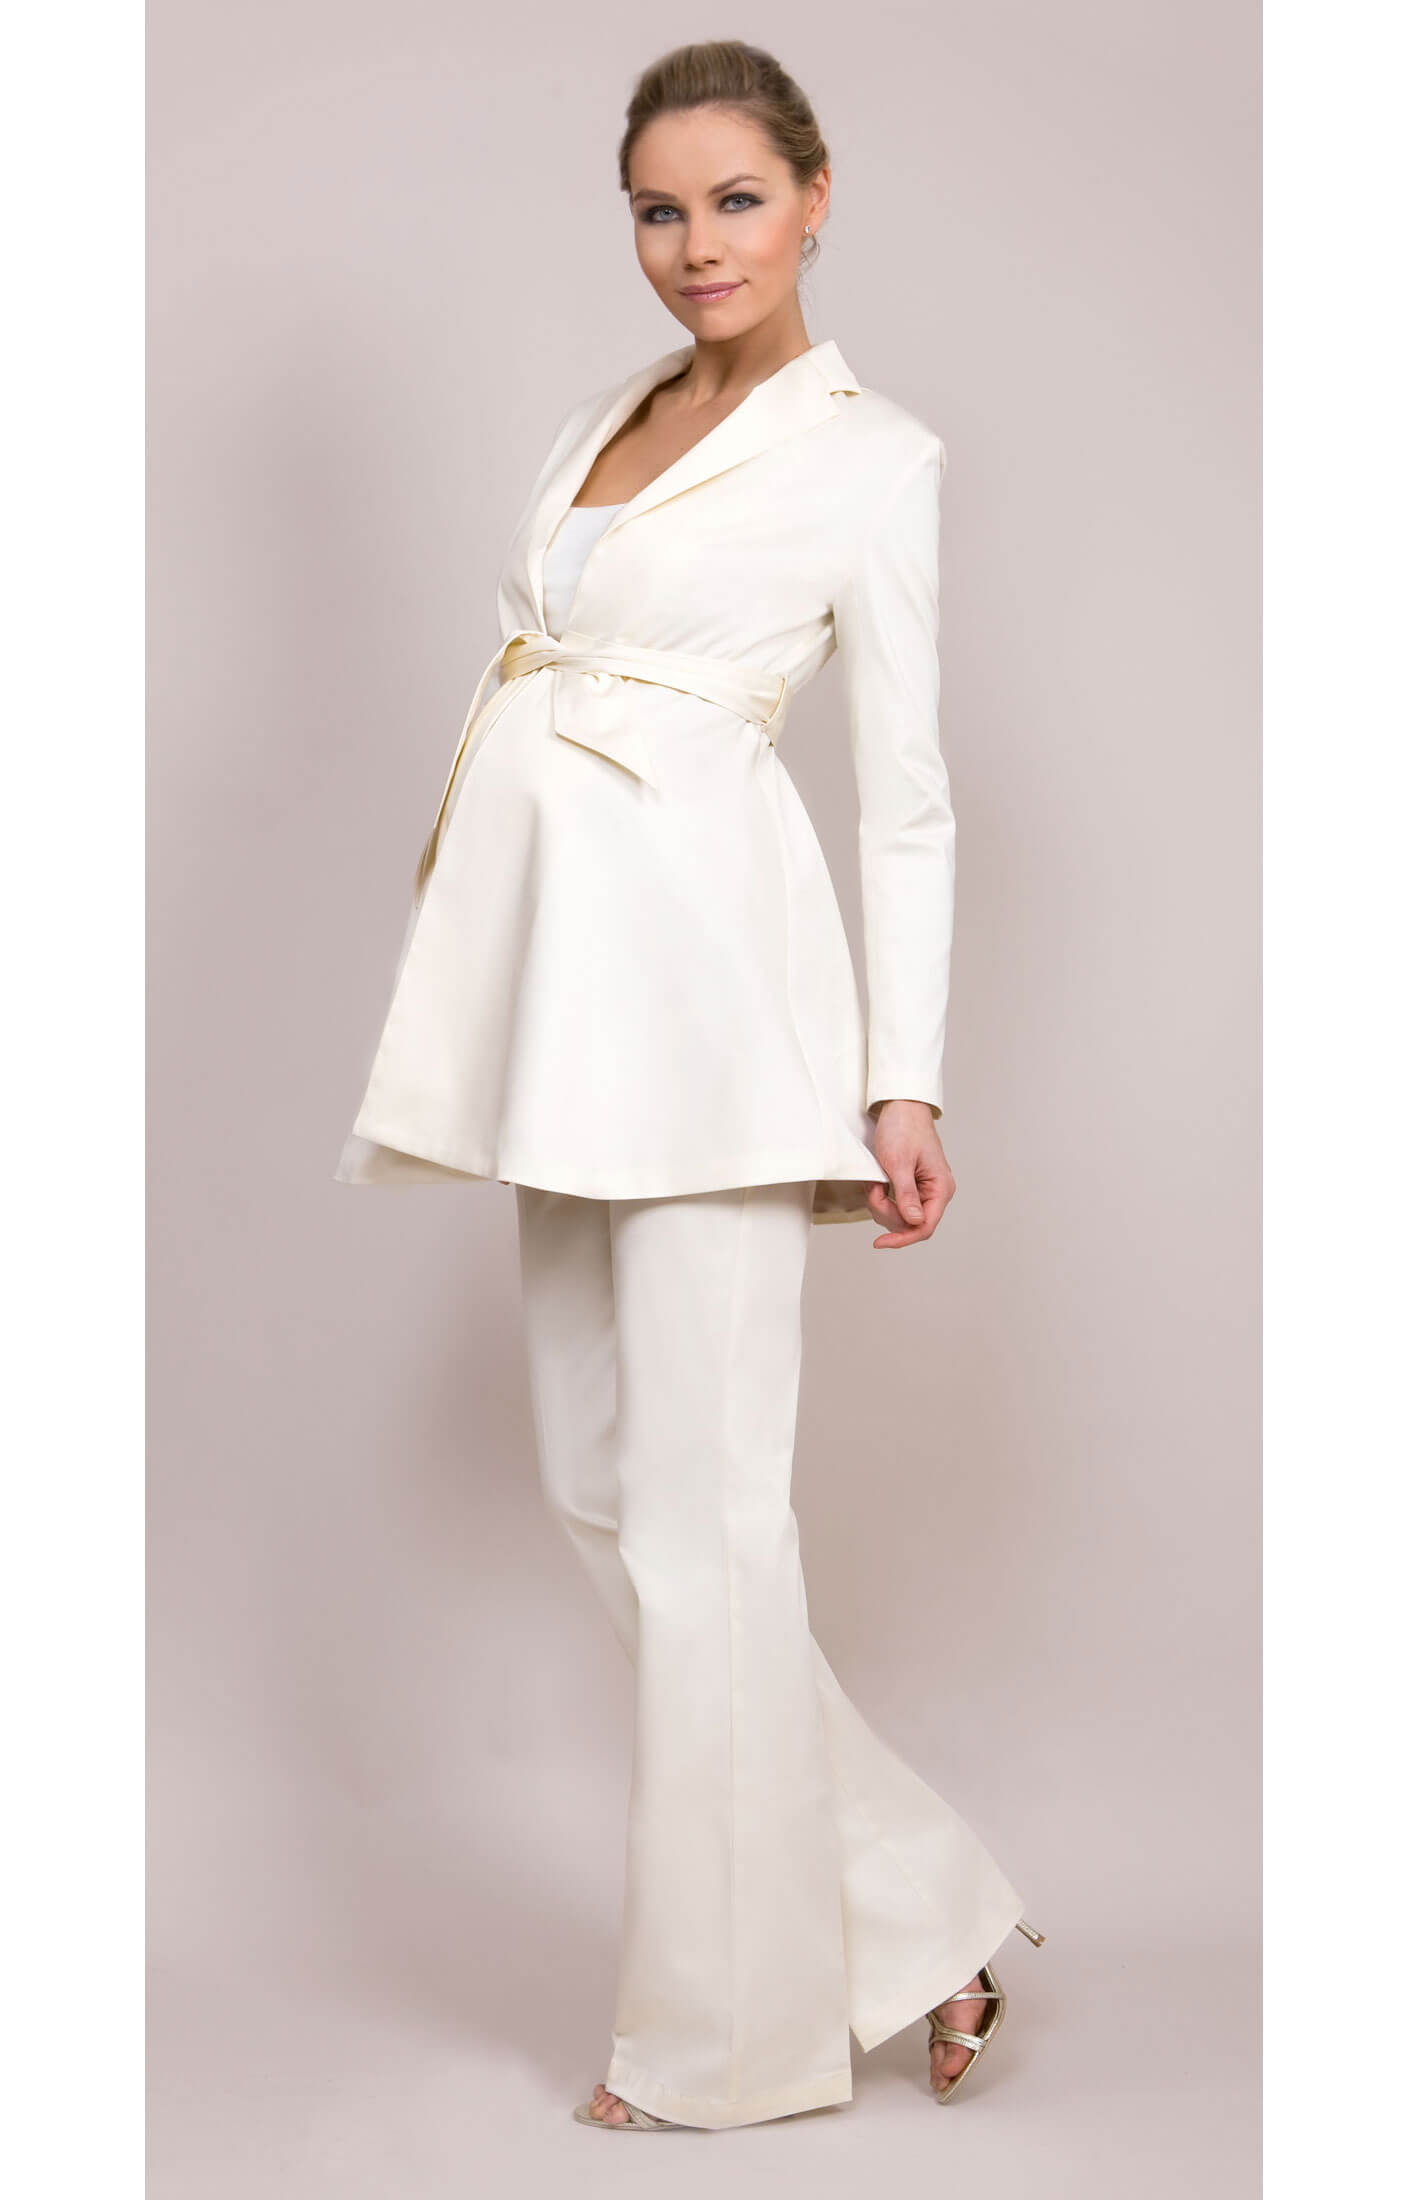 Cocktail dresses with jackets for weddings jackets review for Cocktail dress with jacket for wedding